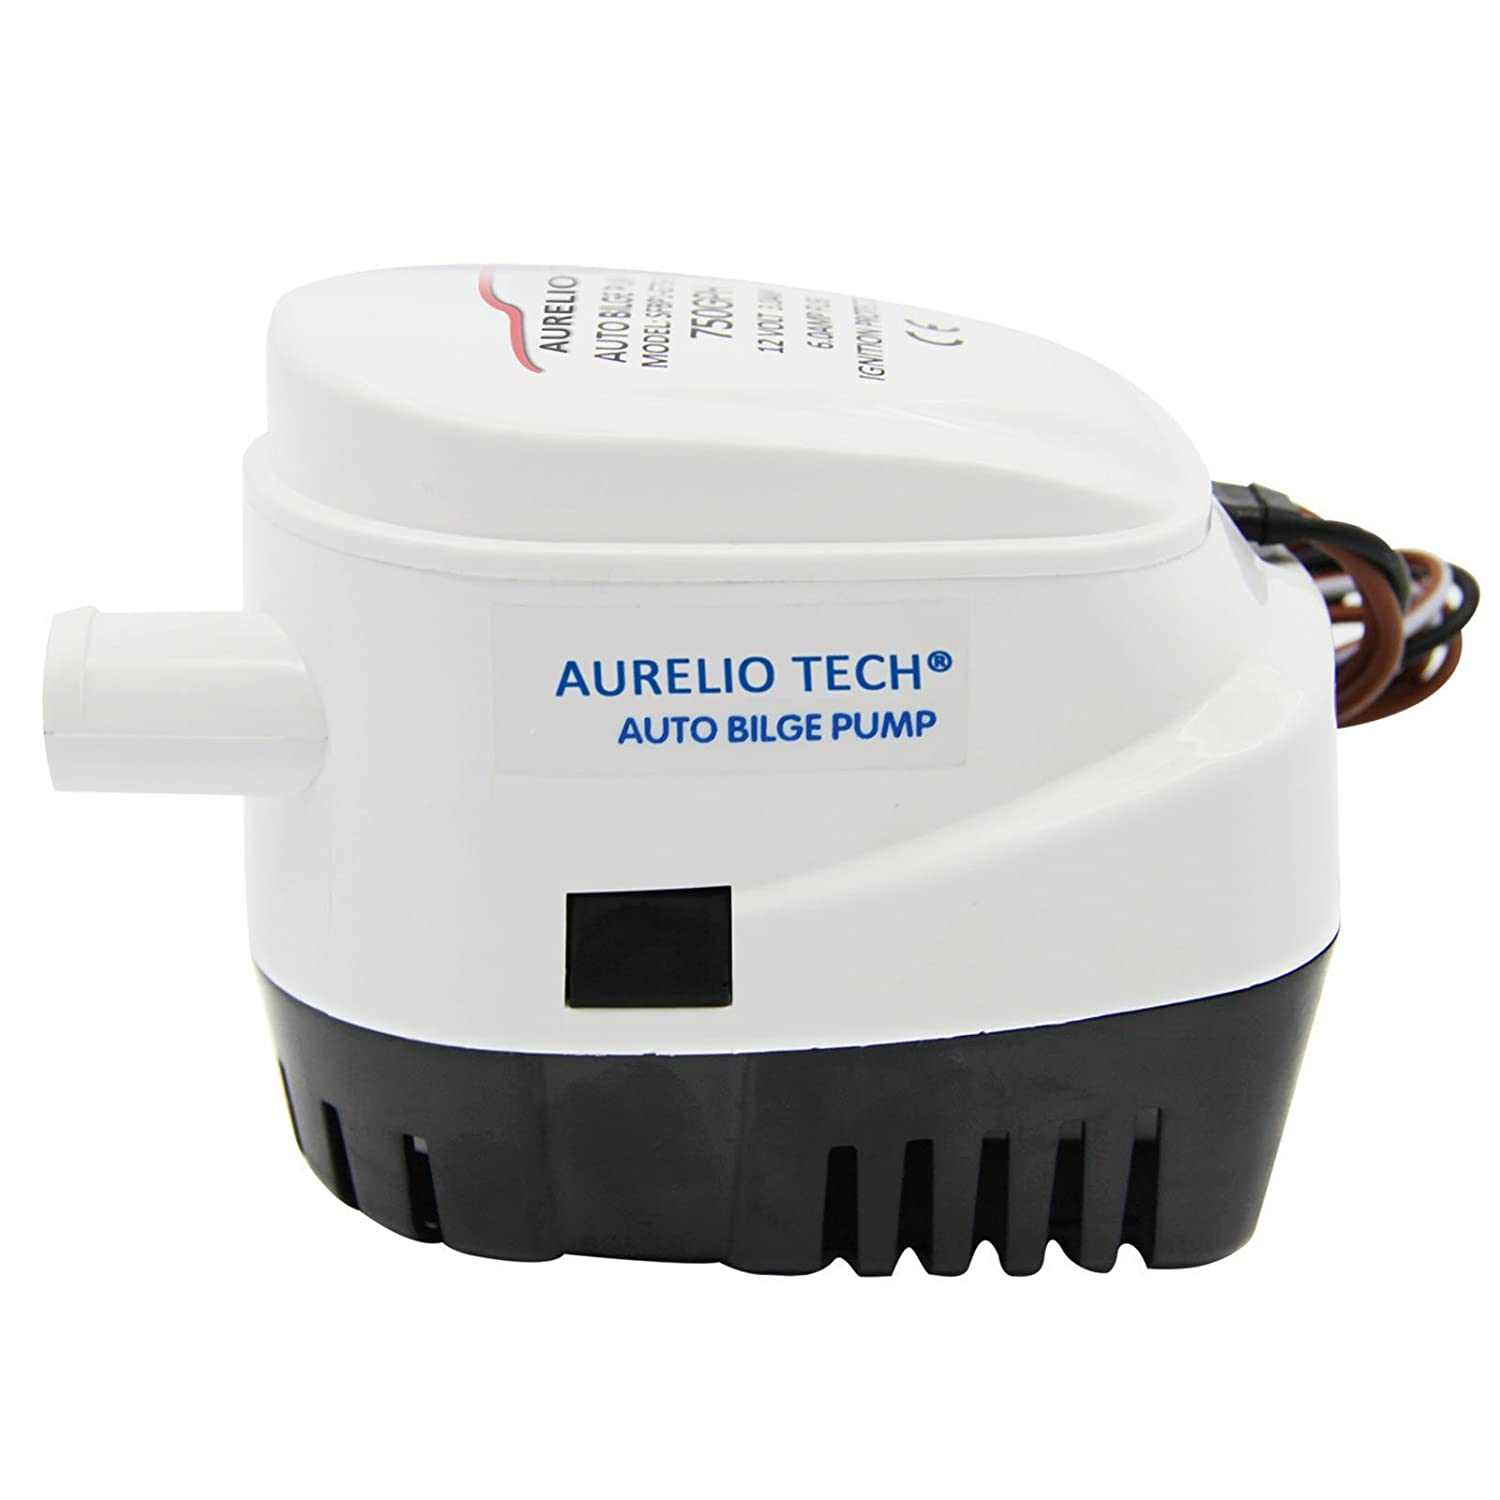 seaflo boat automatic bilge water pumps motor submersible electrics float switch ebay